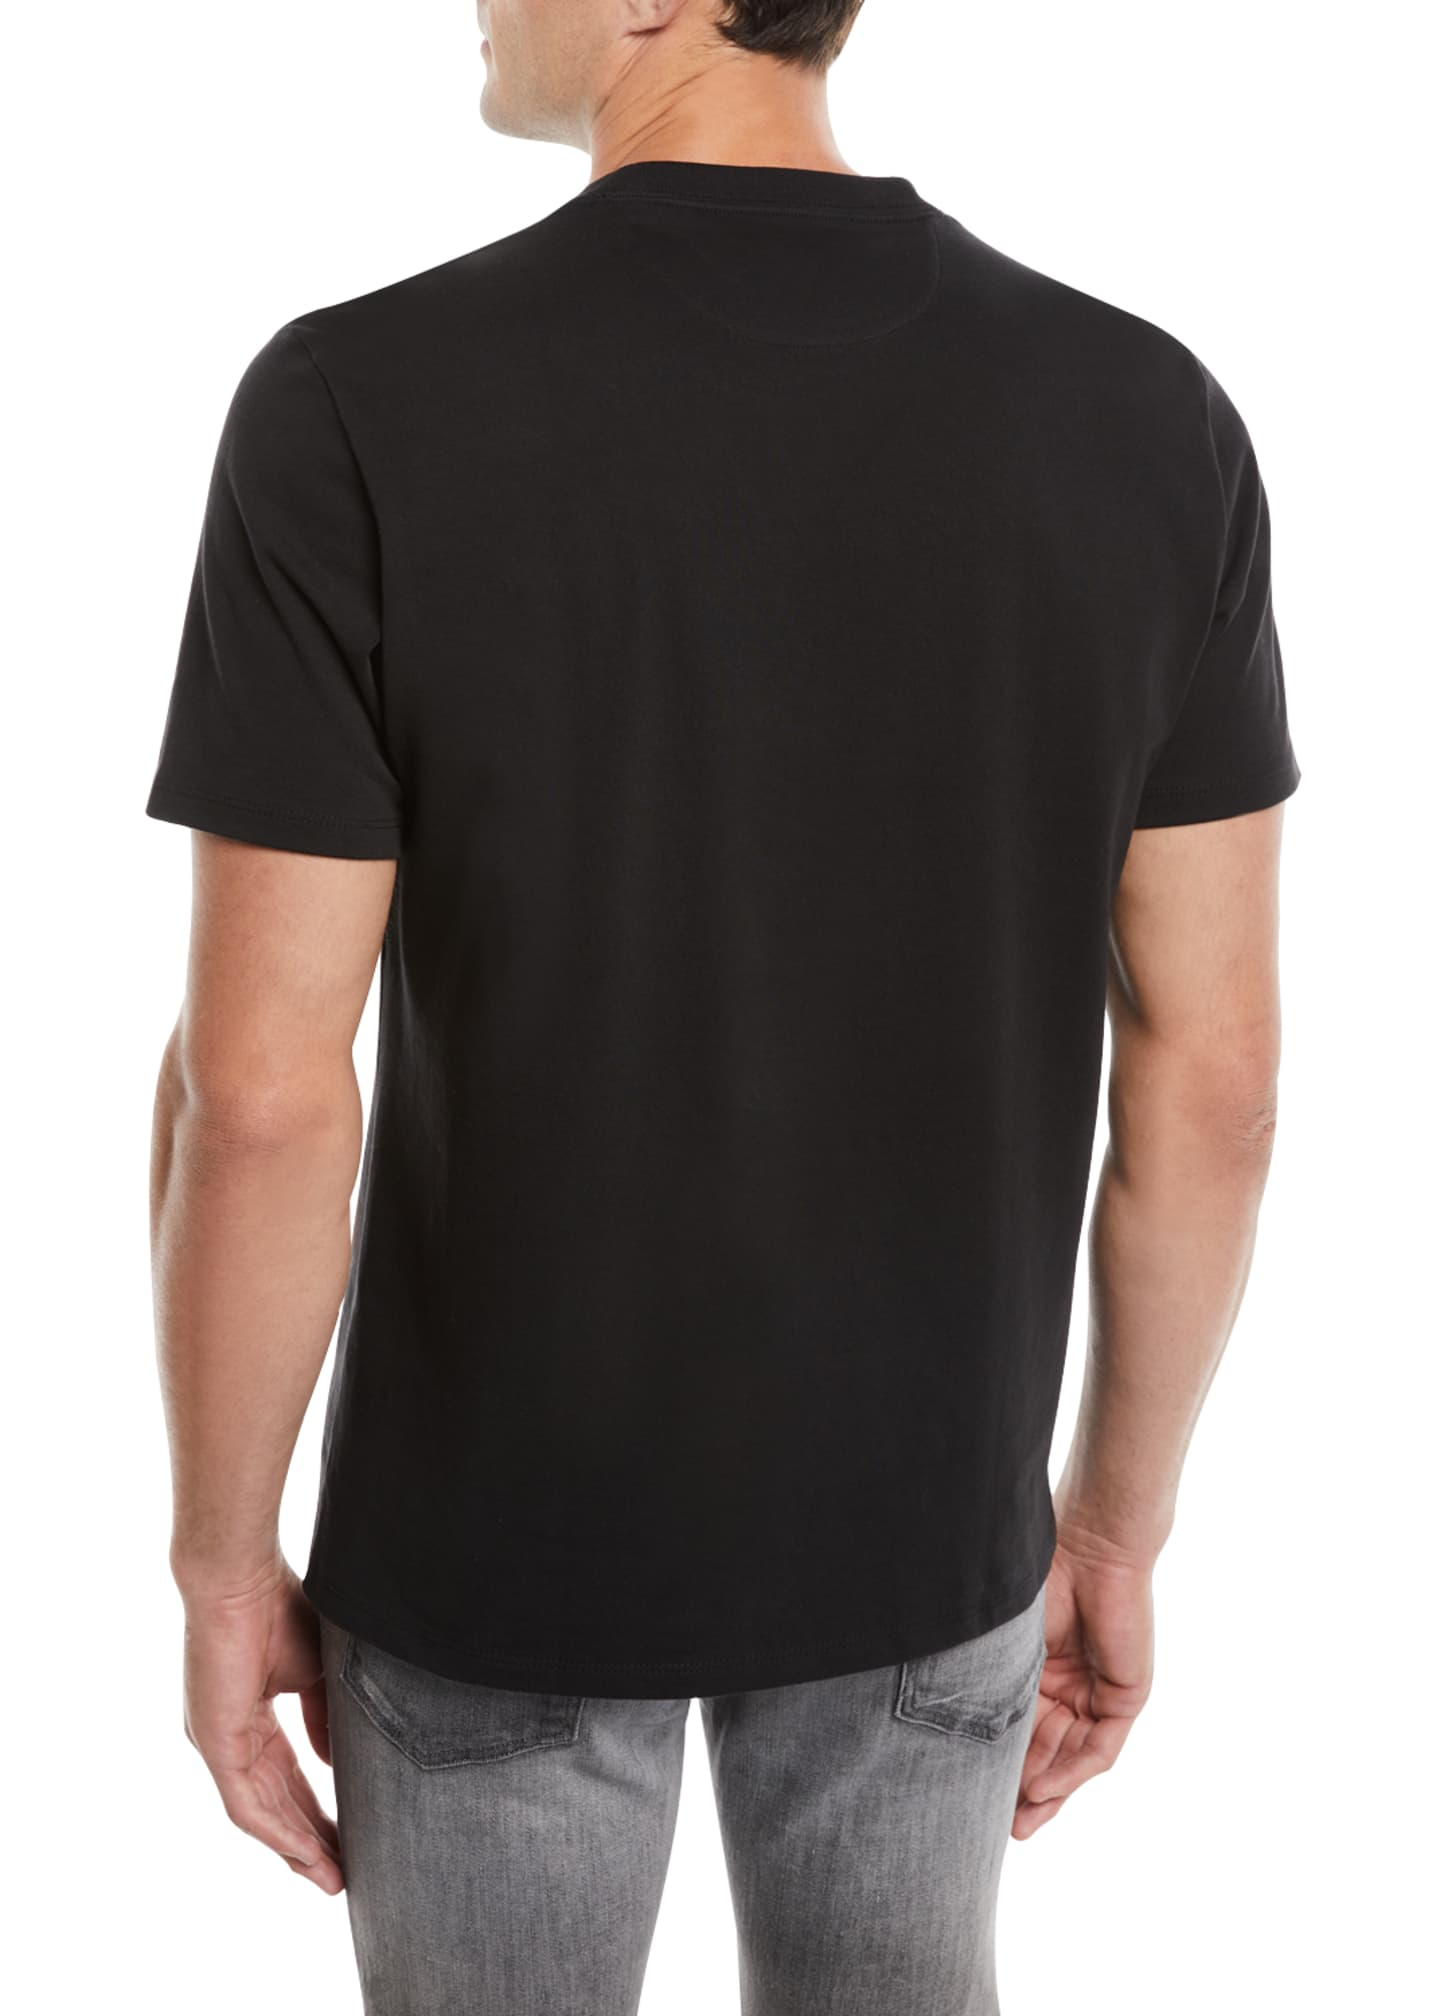 Image 2 of 2: Men's Heavyweight Cotton Crewneck Classic Fit T-Shirt